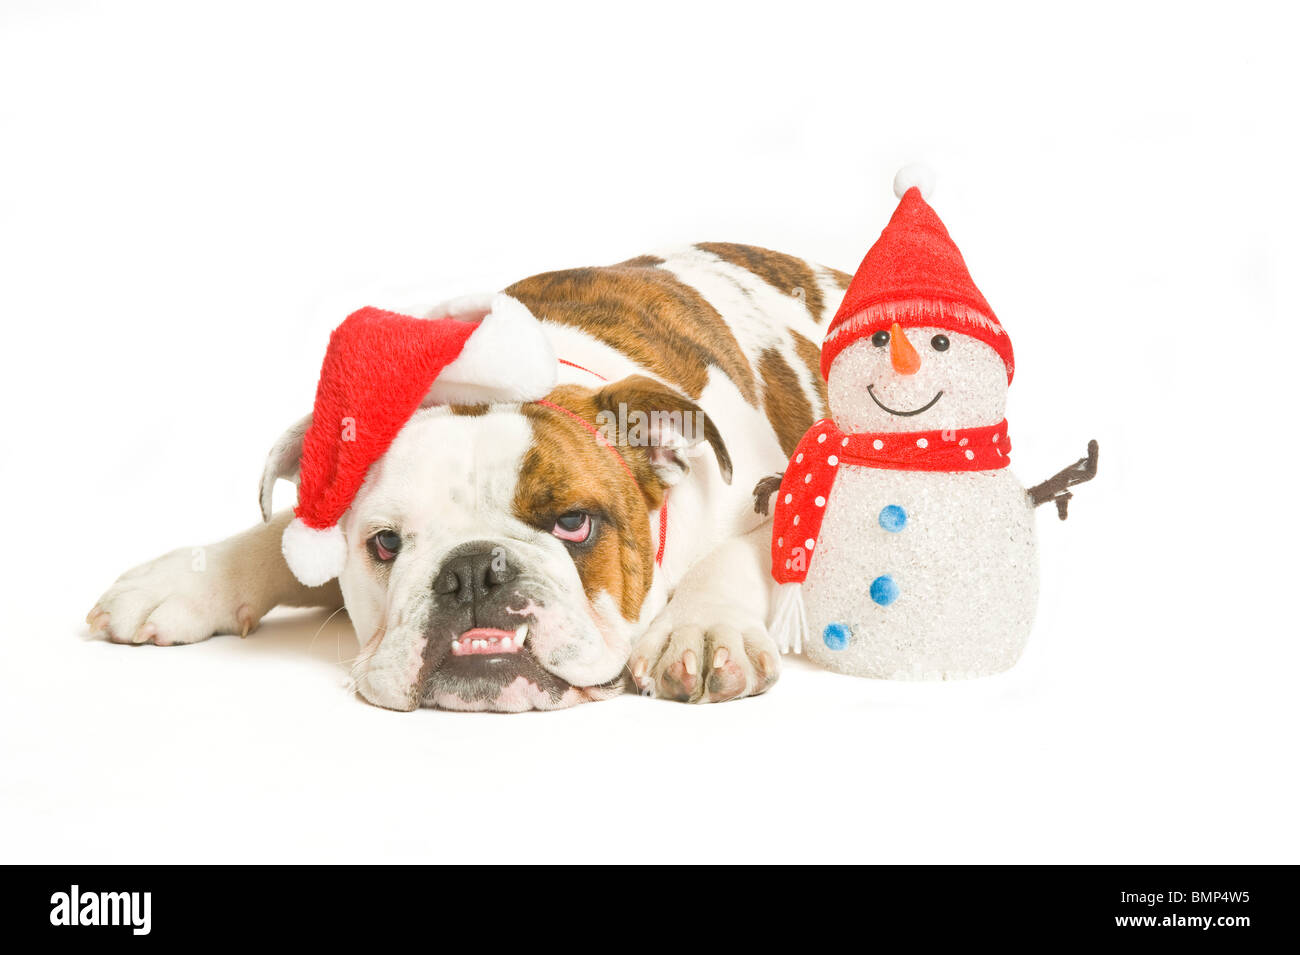 A British Bulldog looking really fed up with a Santa hat on next to a smiling toy snowman against a pure white (255rgb) - Stock Image